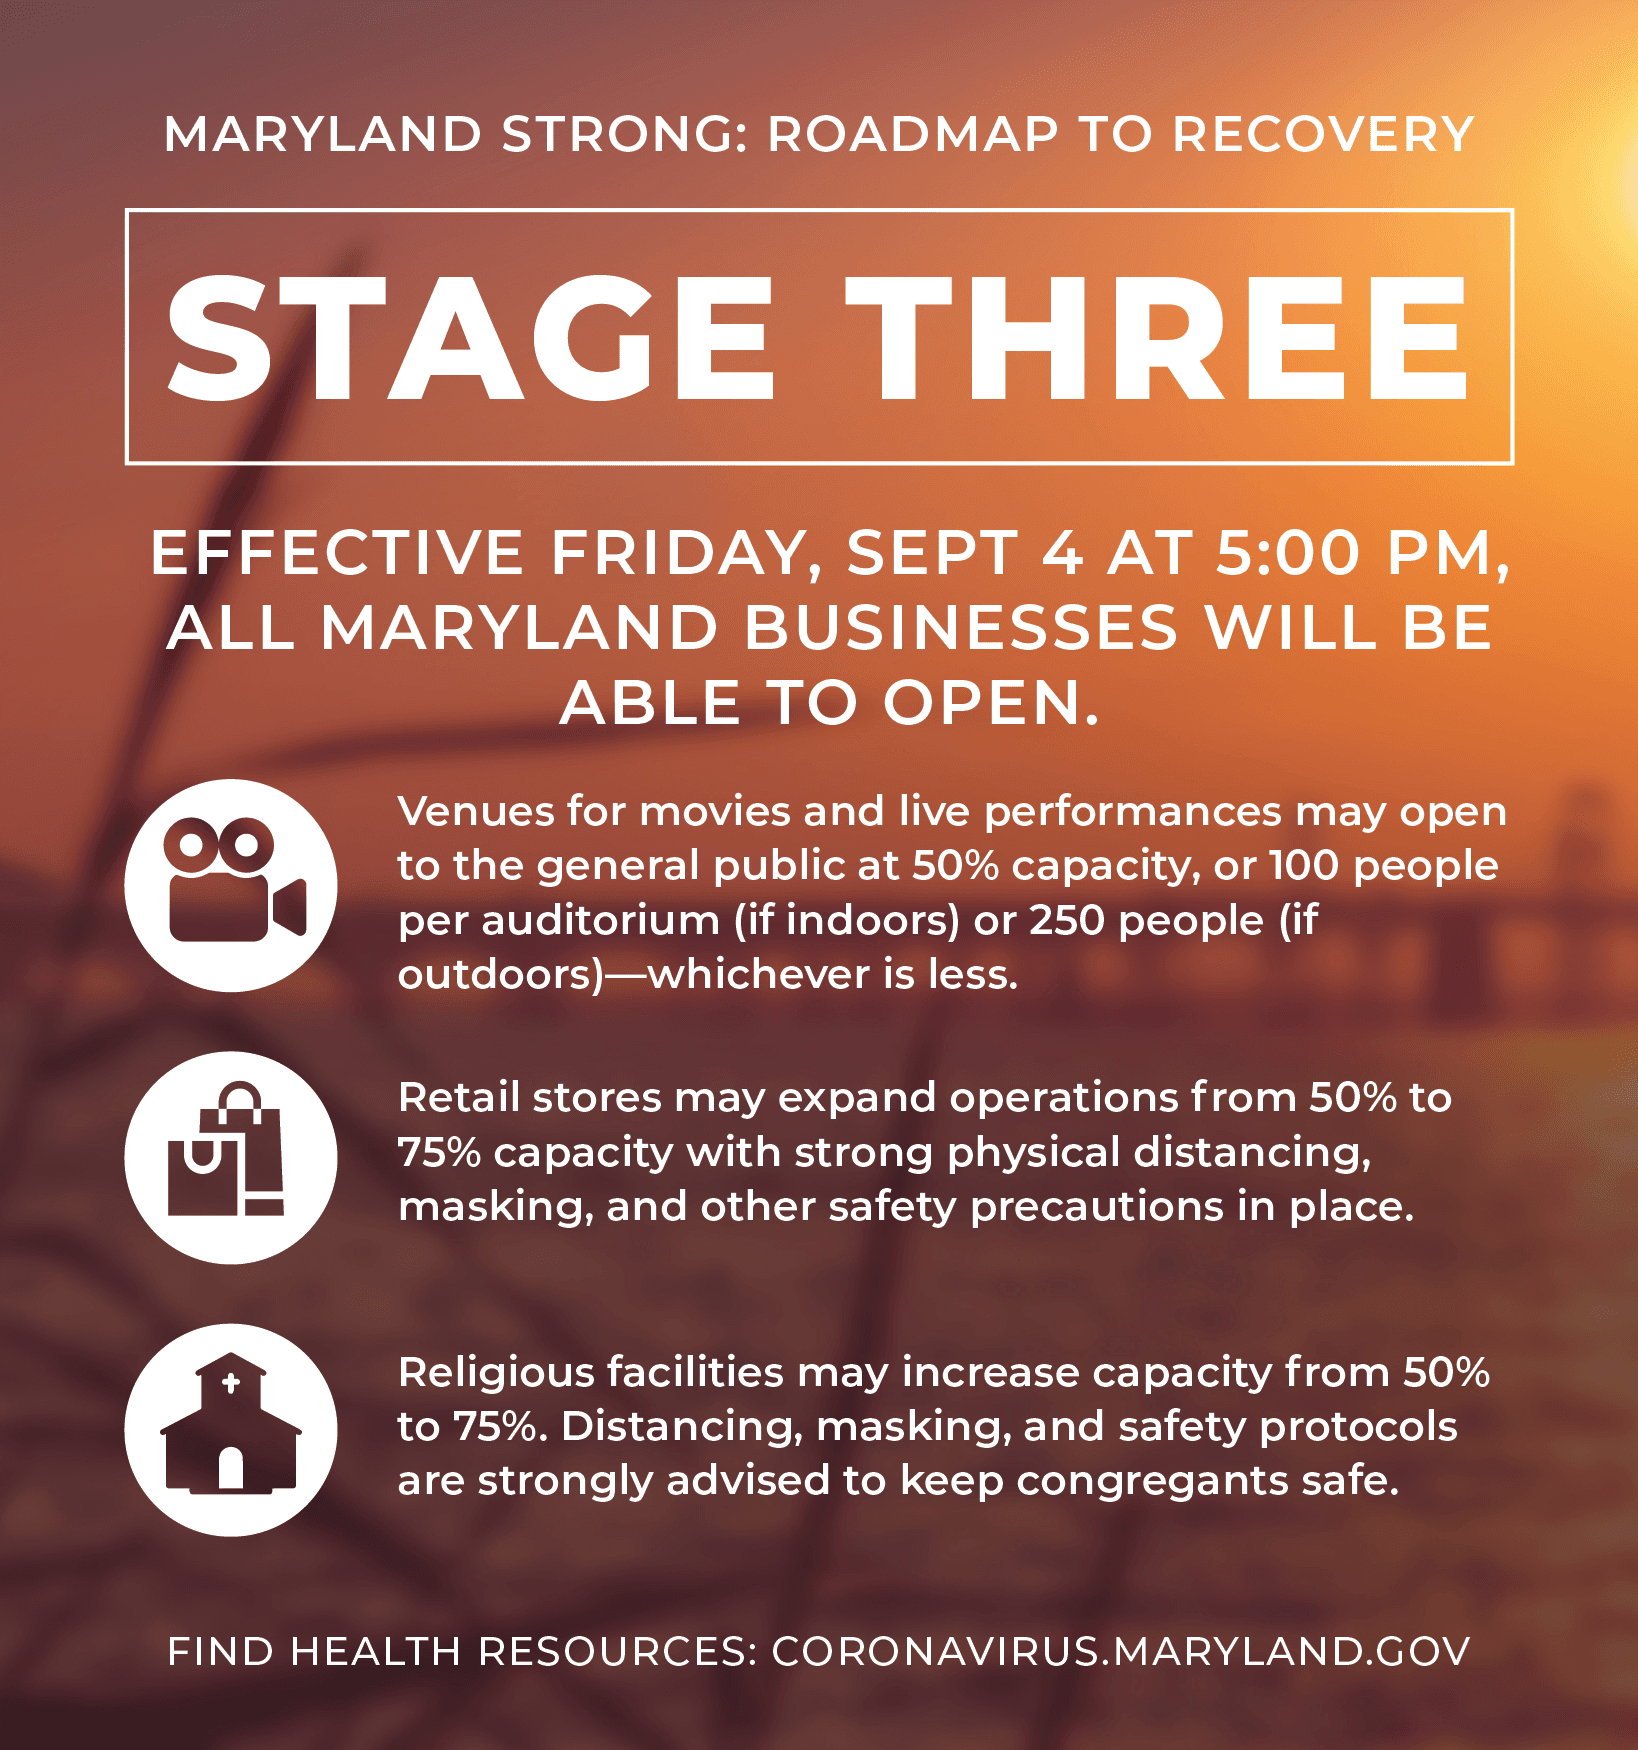 Maryland-stage-3